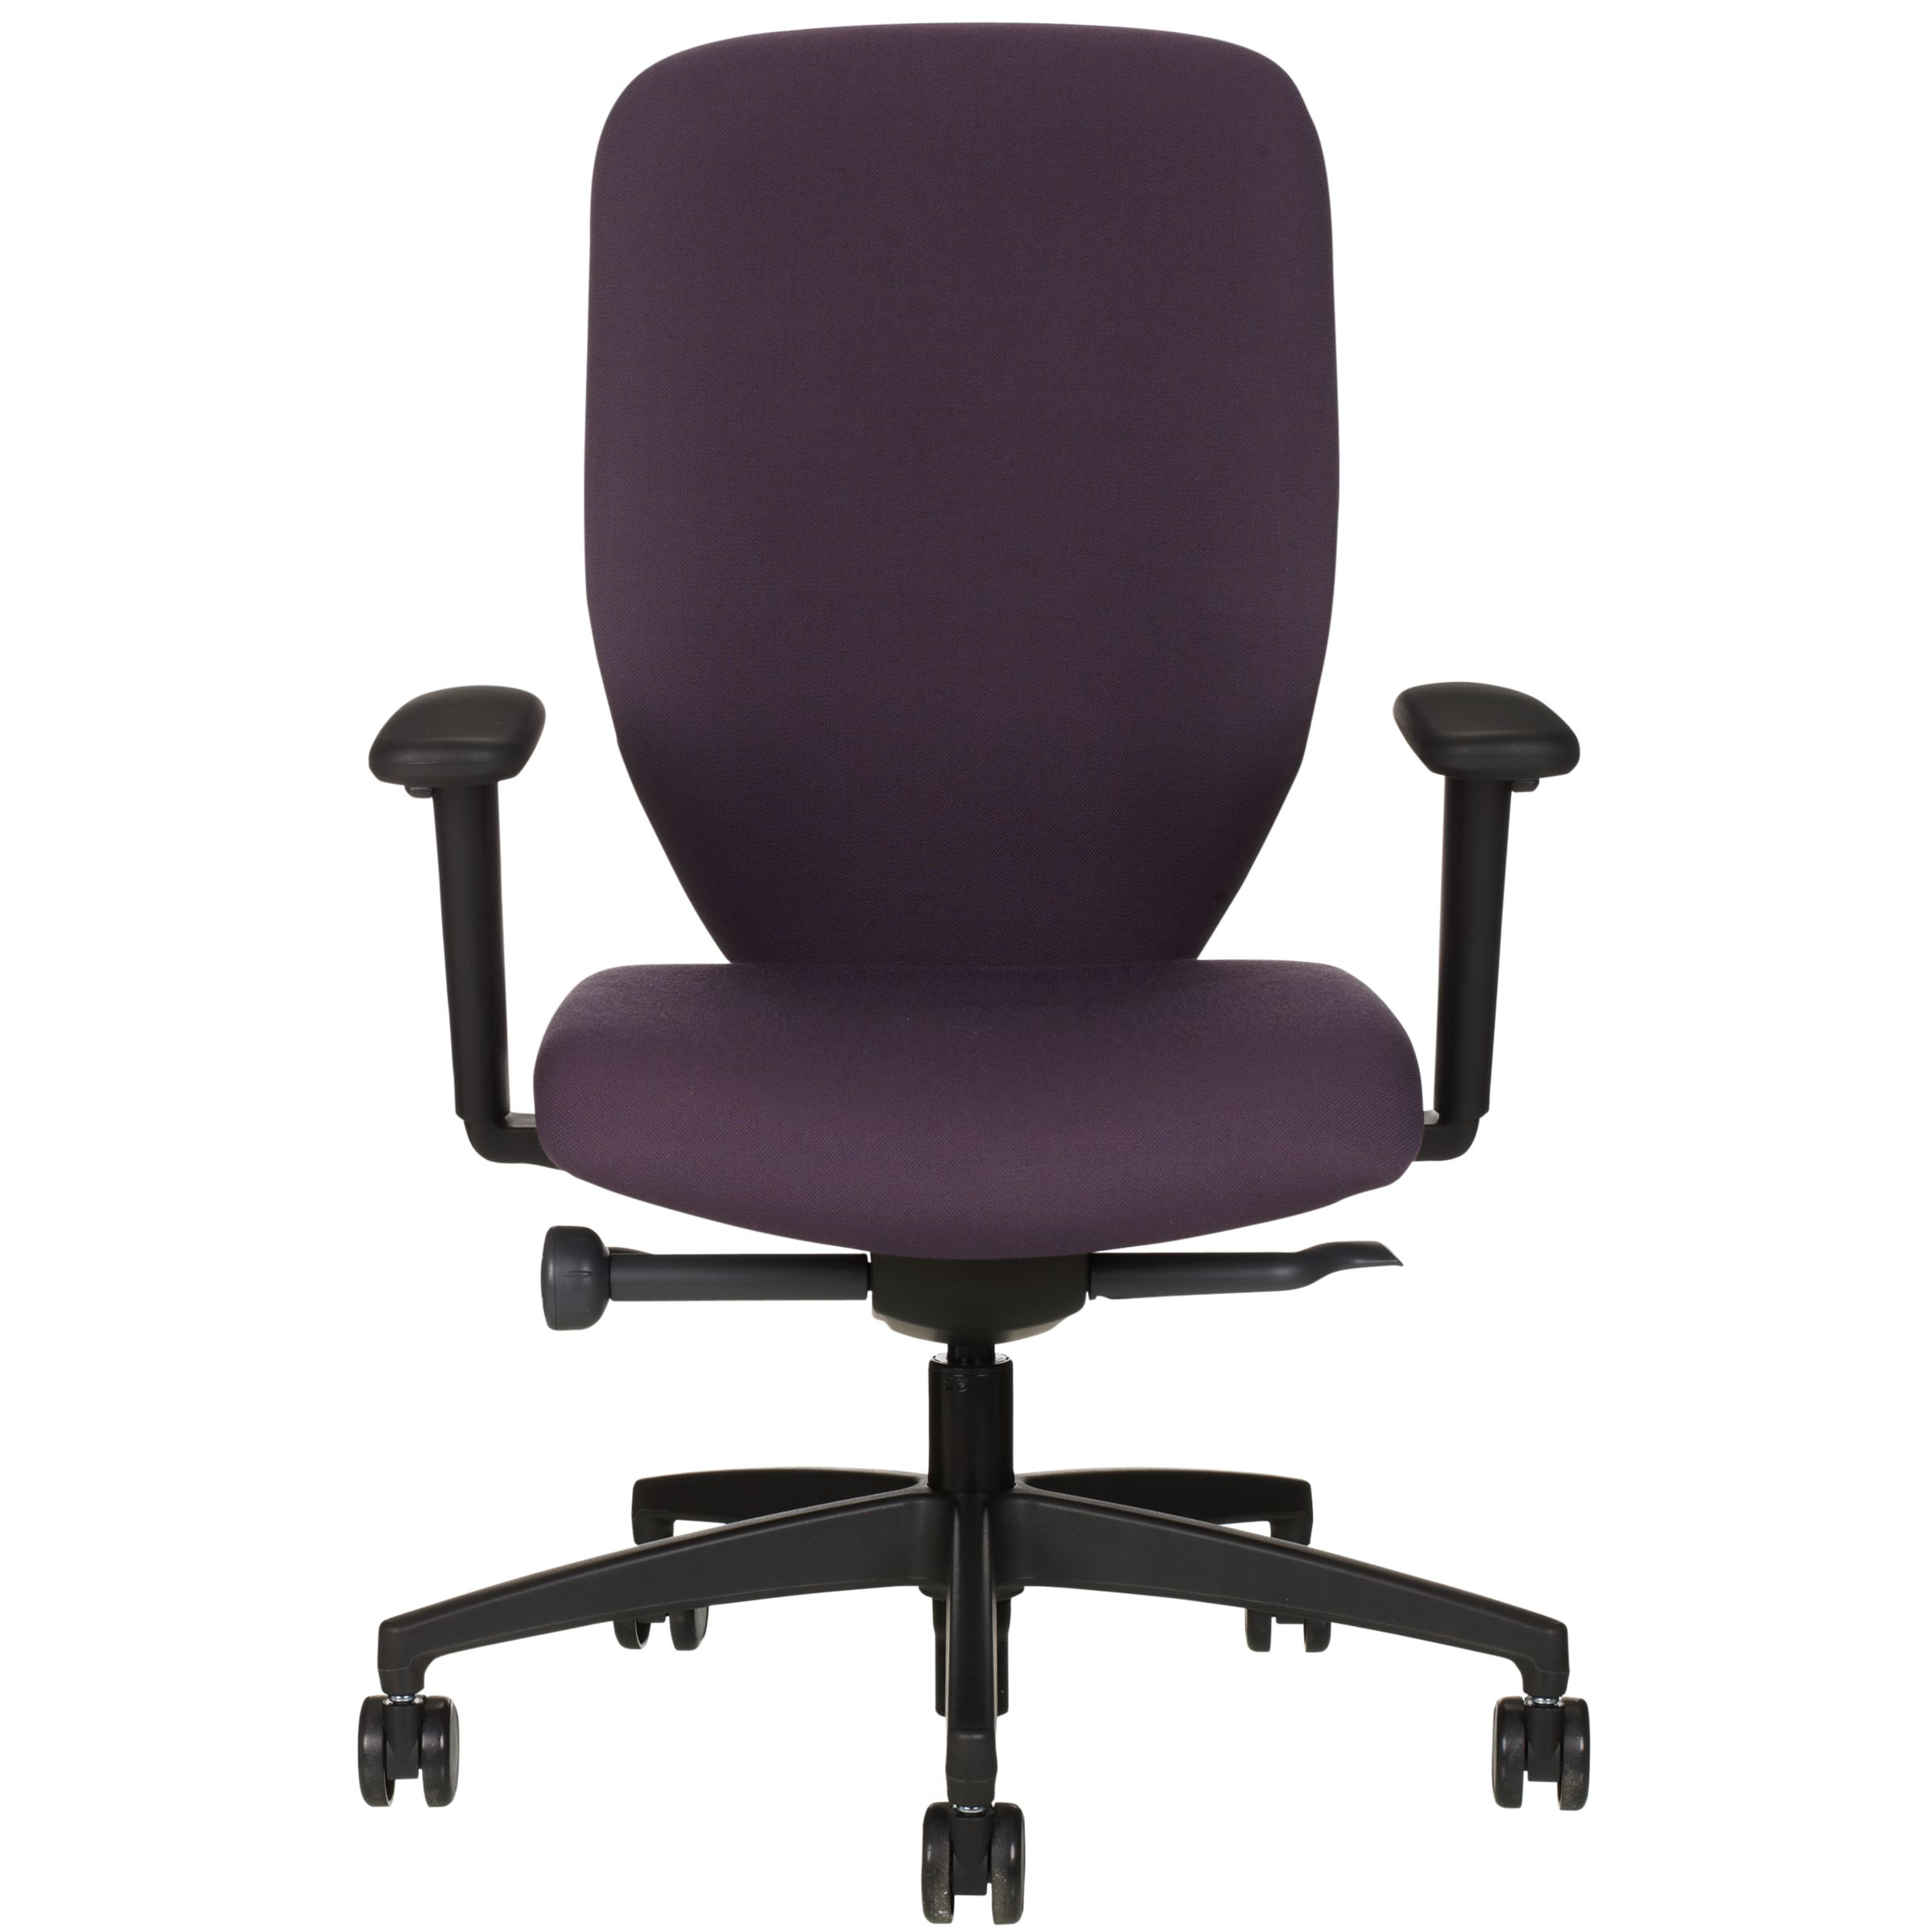 Boss Design Lily Office Chair, Muse